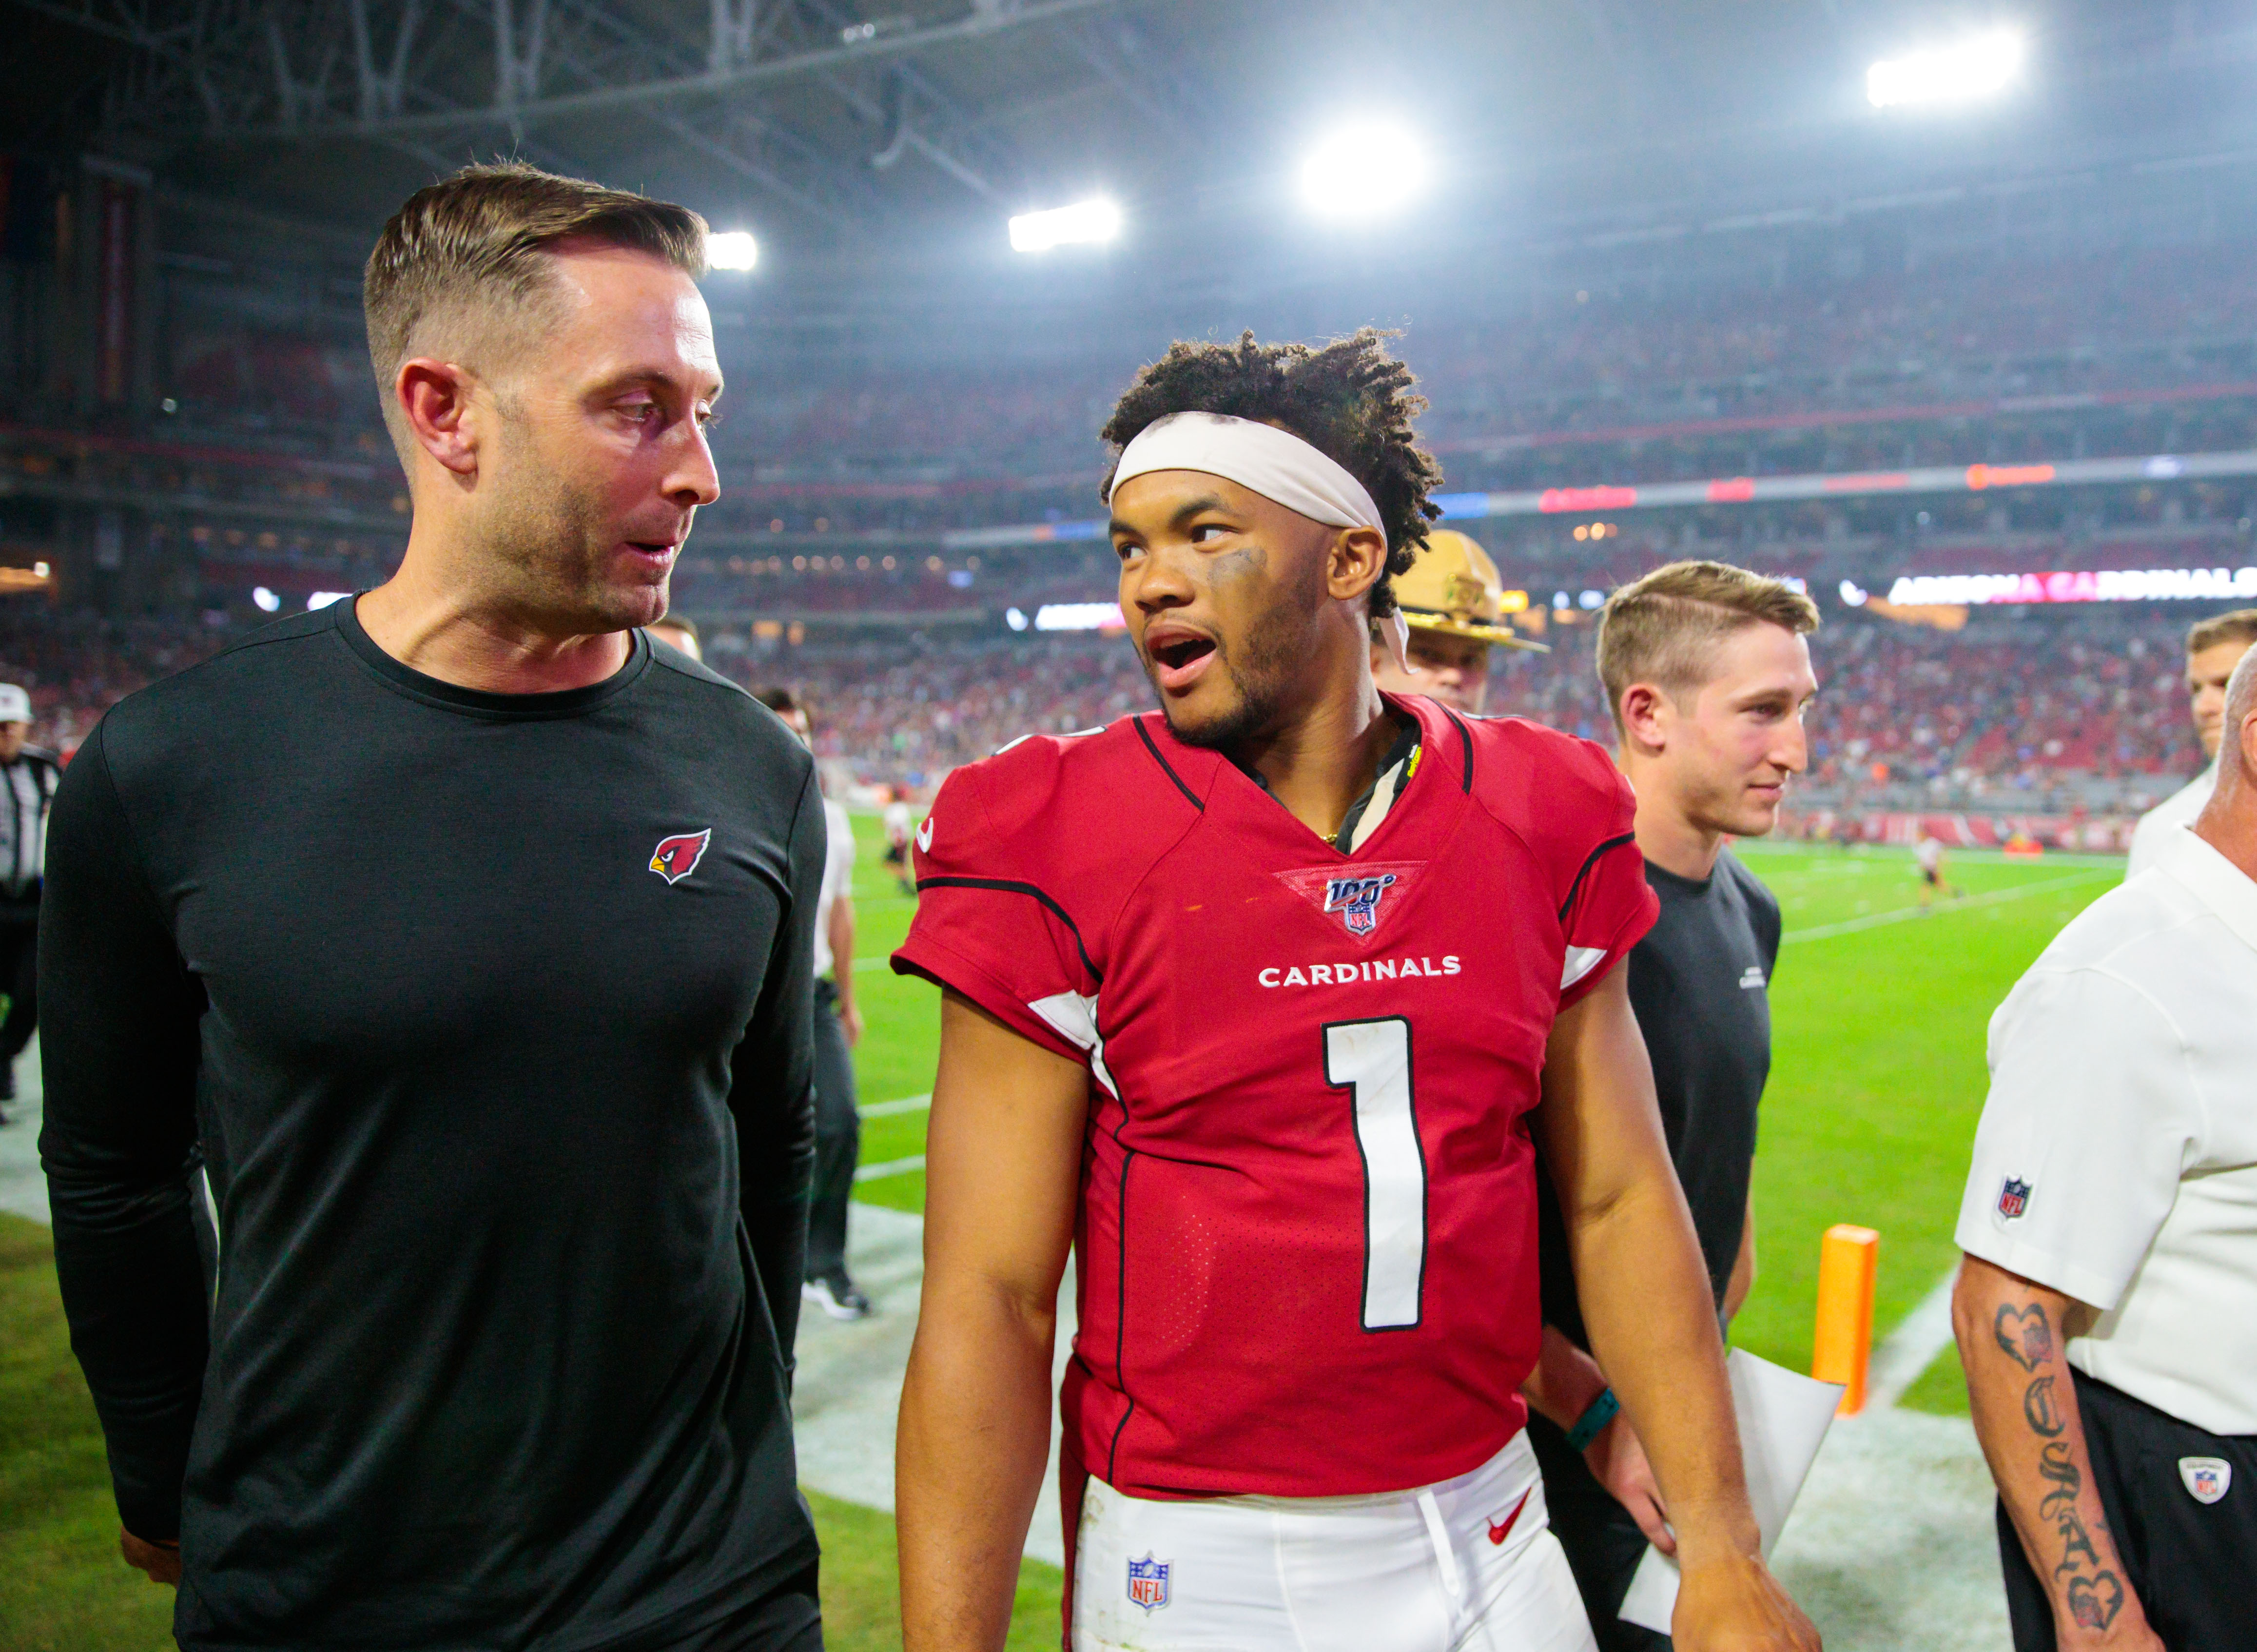 Watch: Kyler Murray achieves perfection in NFL debut